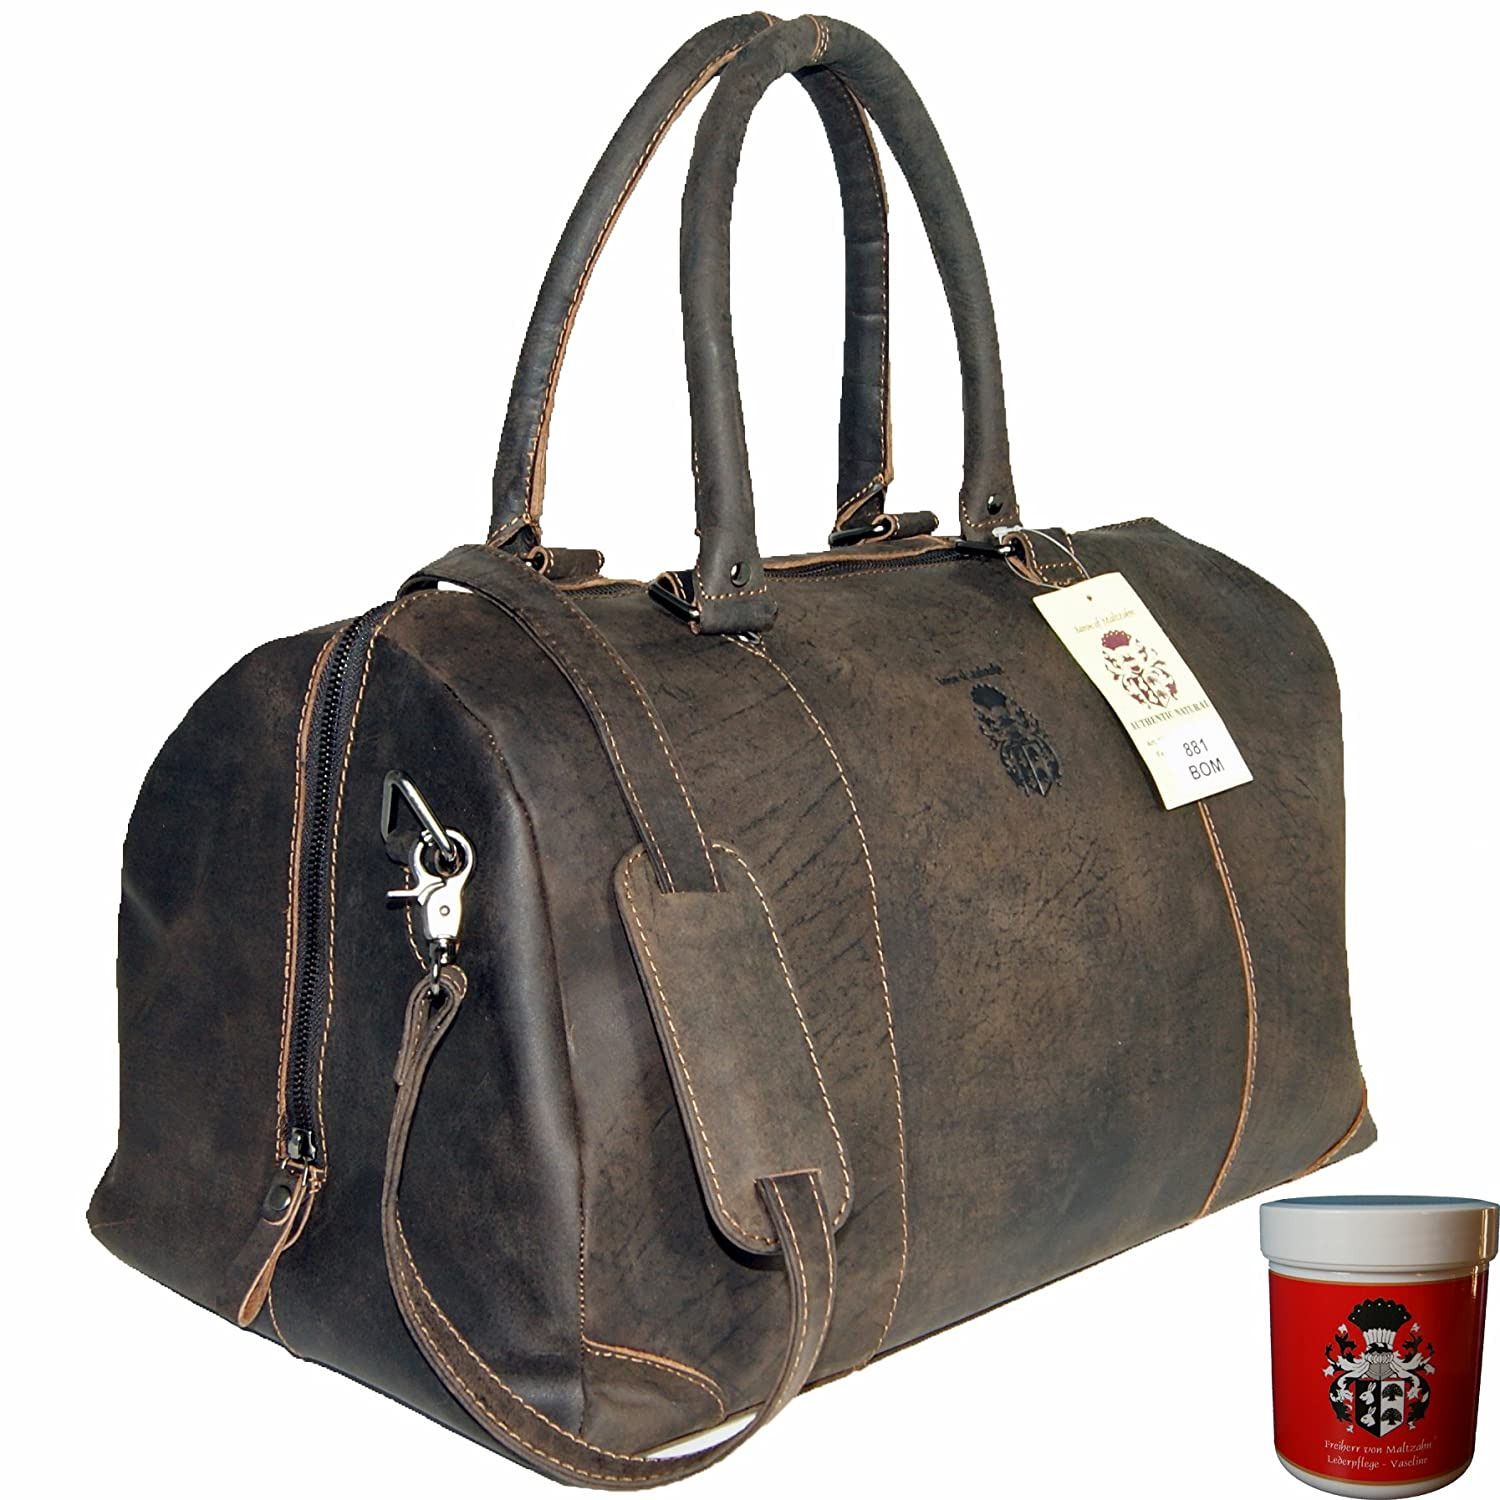 BARON of MALTZAHN - Travel Bag - Sports Bag LONDON made of buffalo leather incl. leather care